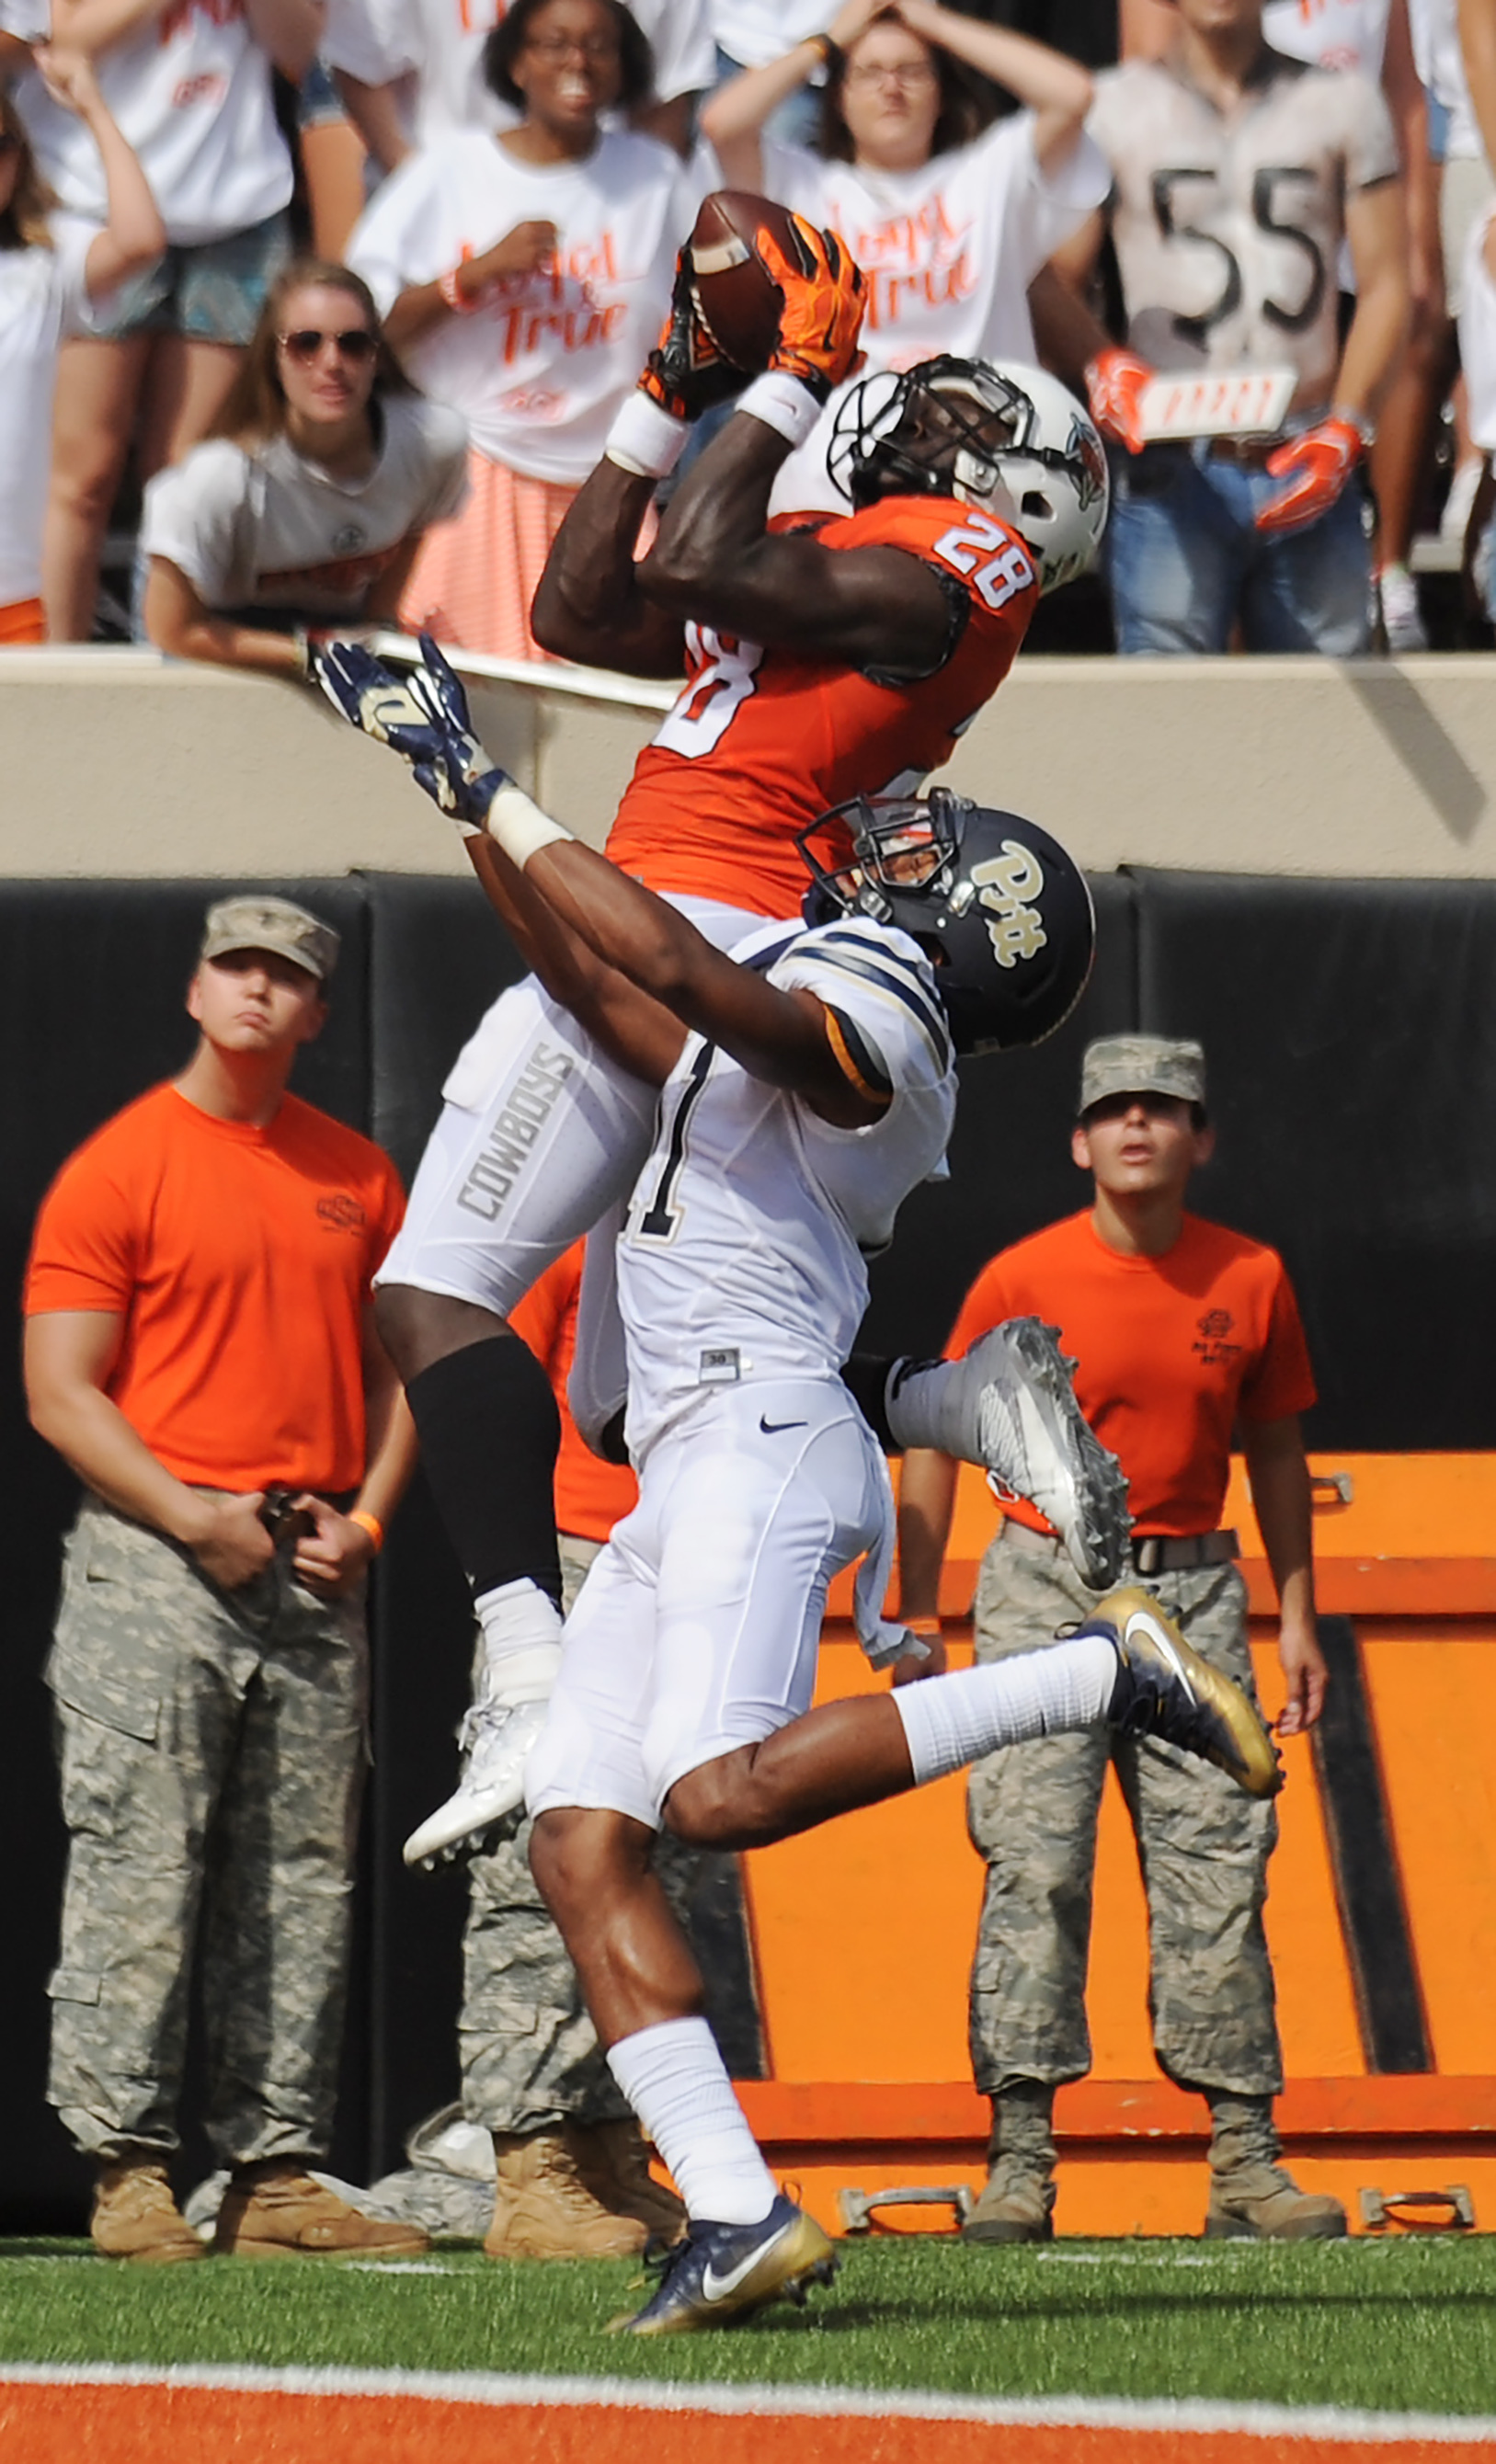 Oklahoma State wide receiver James Washington, top, catches a touchdown pass despite pressure from Pittsburgh defensive back Dane Jackson during the first half of an NCAA college football game in Stillwater, Okla., Saturday, Sept. 17, 2016. (AP Photo/Brod